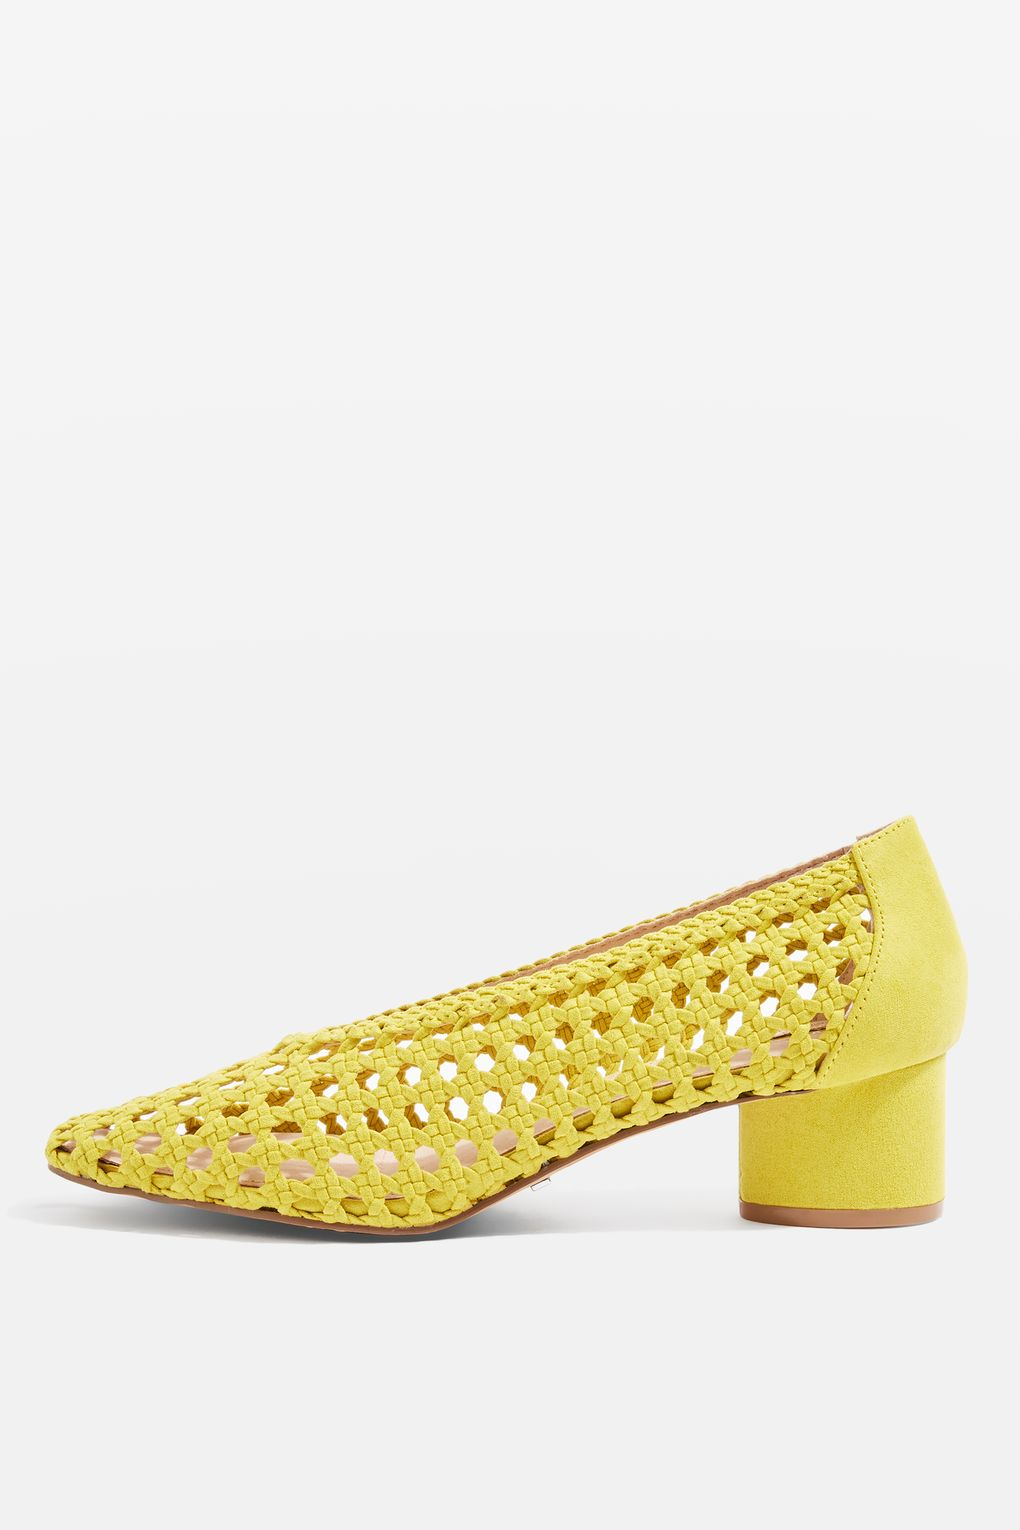 ROSE & IVY Journal The Find | Yellow Woven Heels